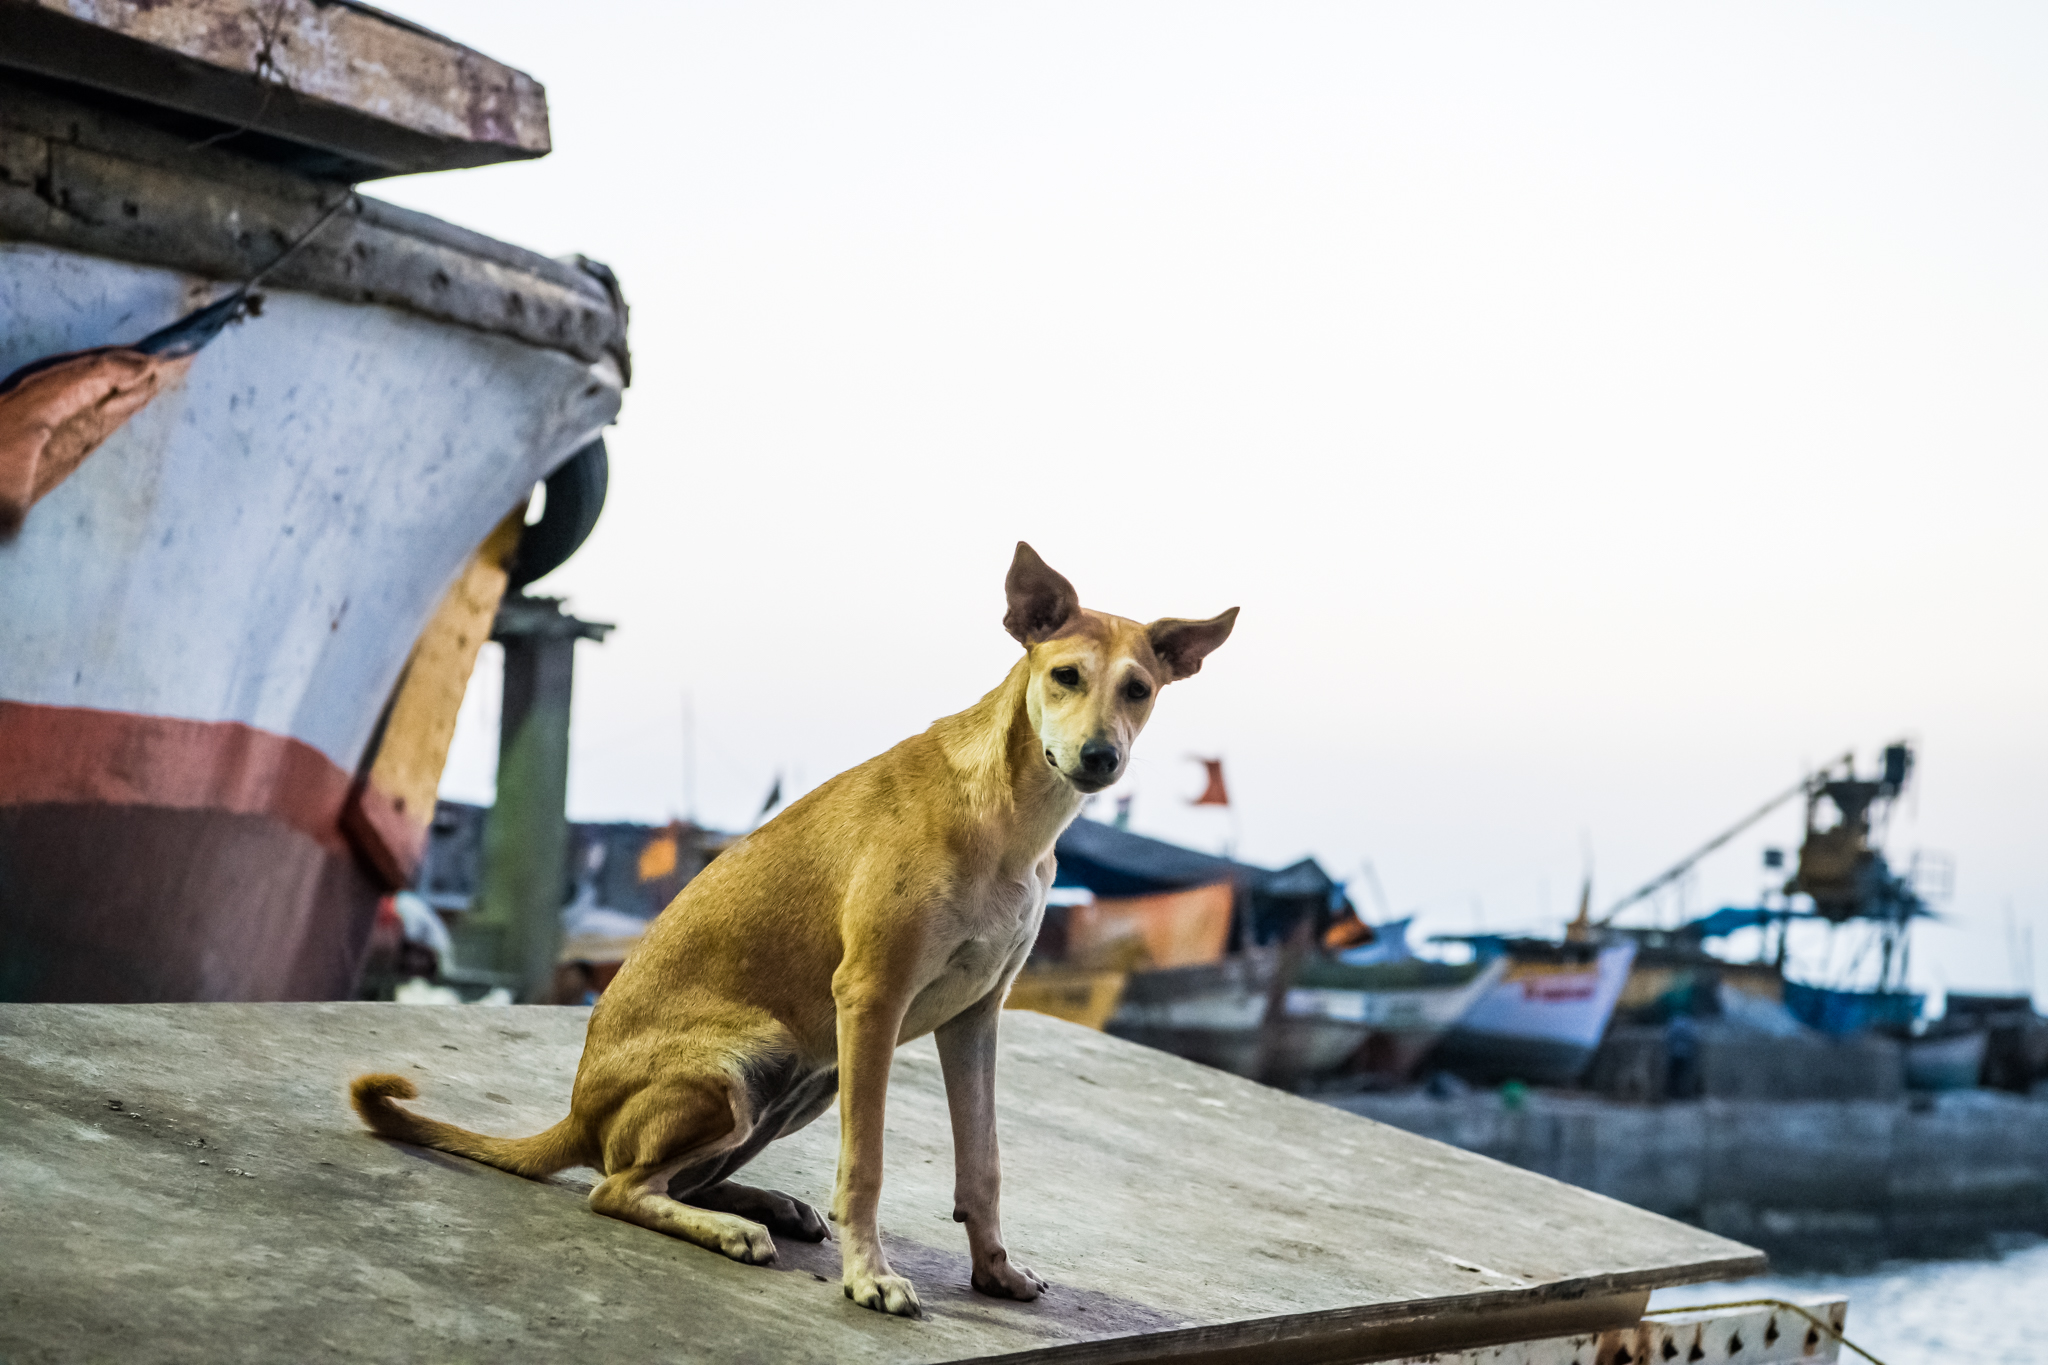 thetravelhub_india_mumbai dog.jpg